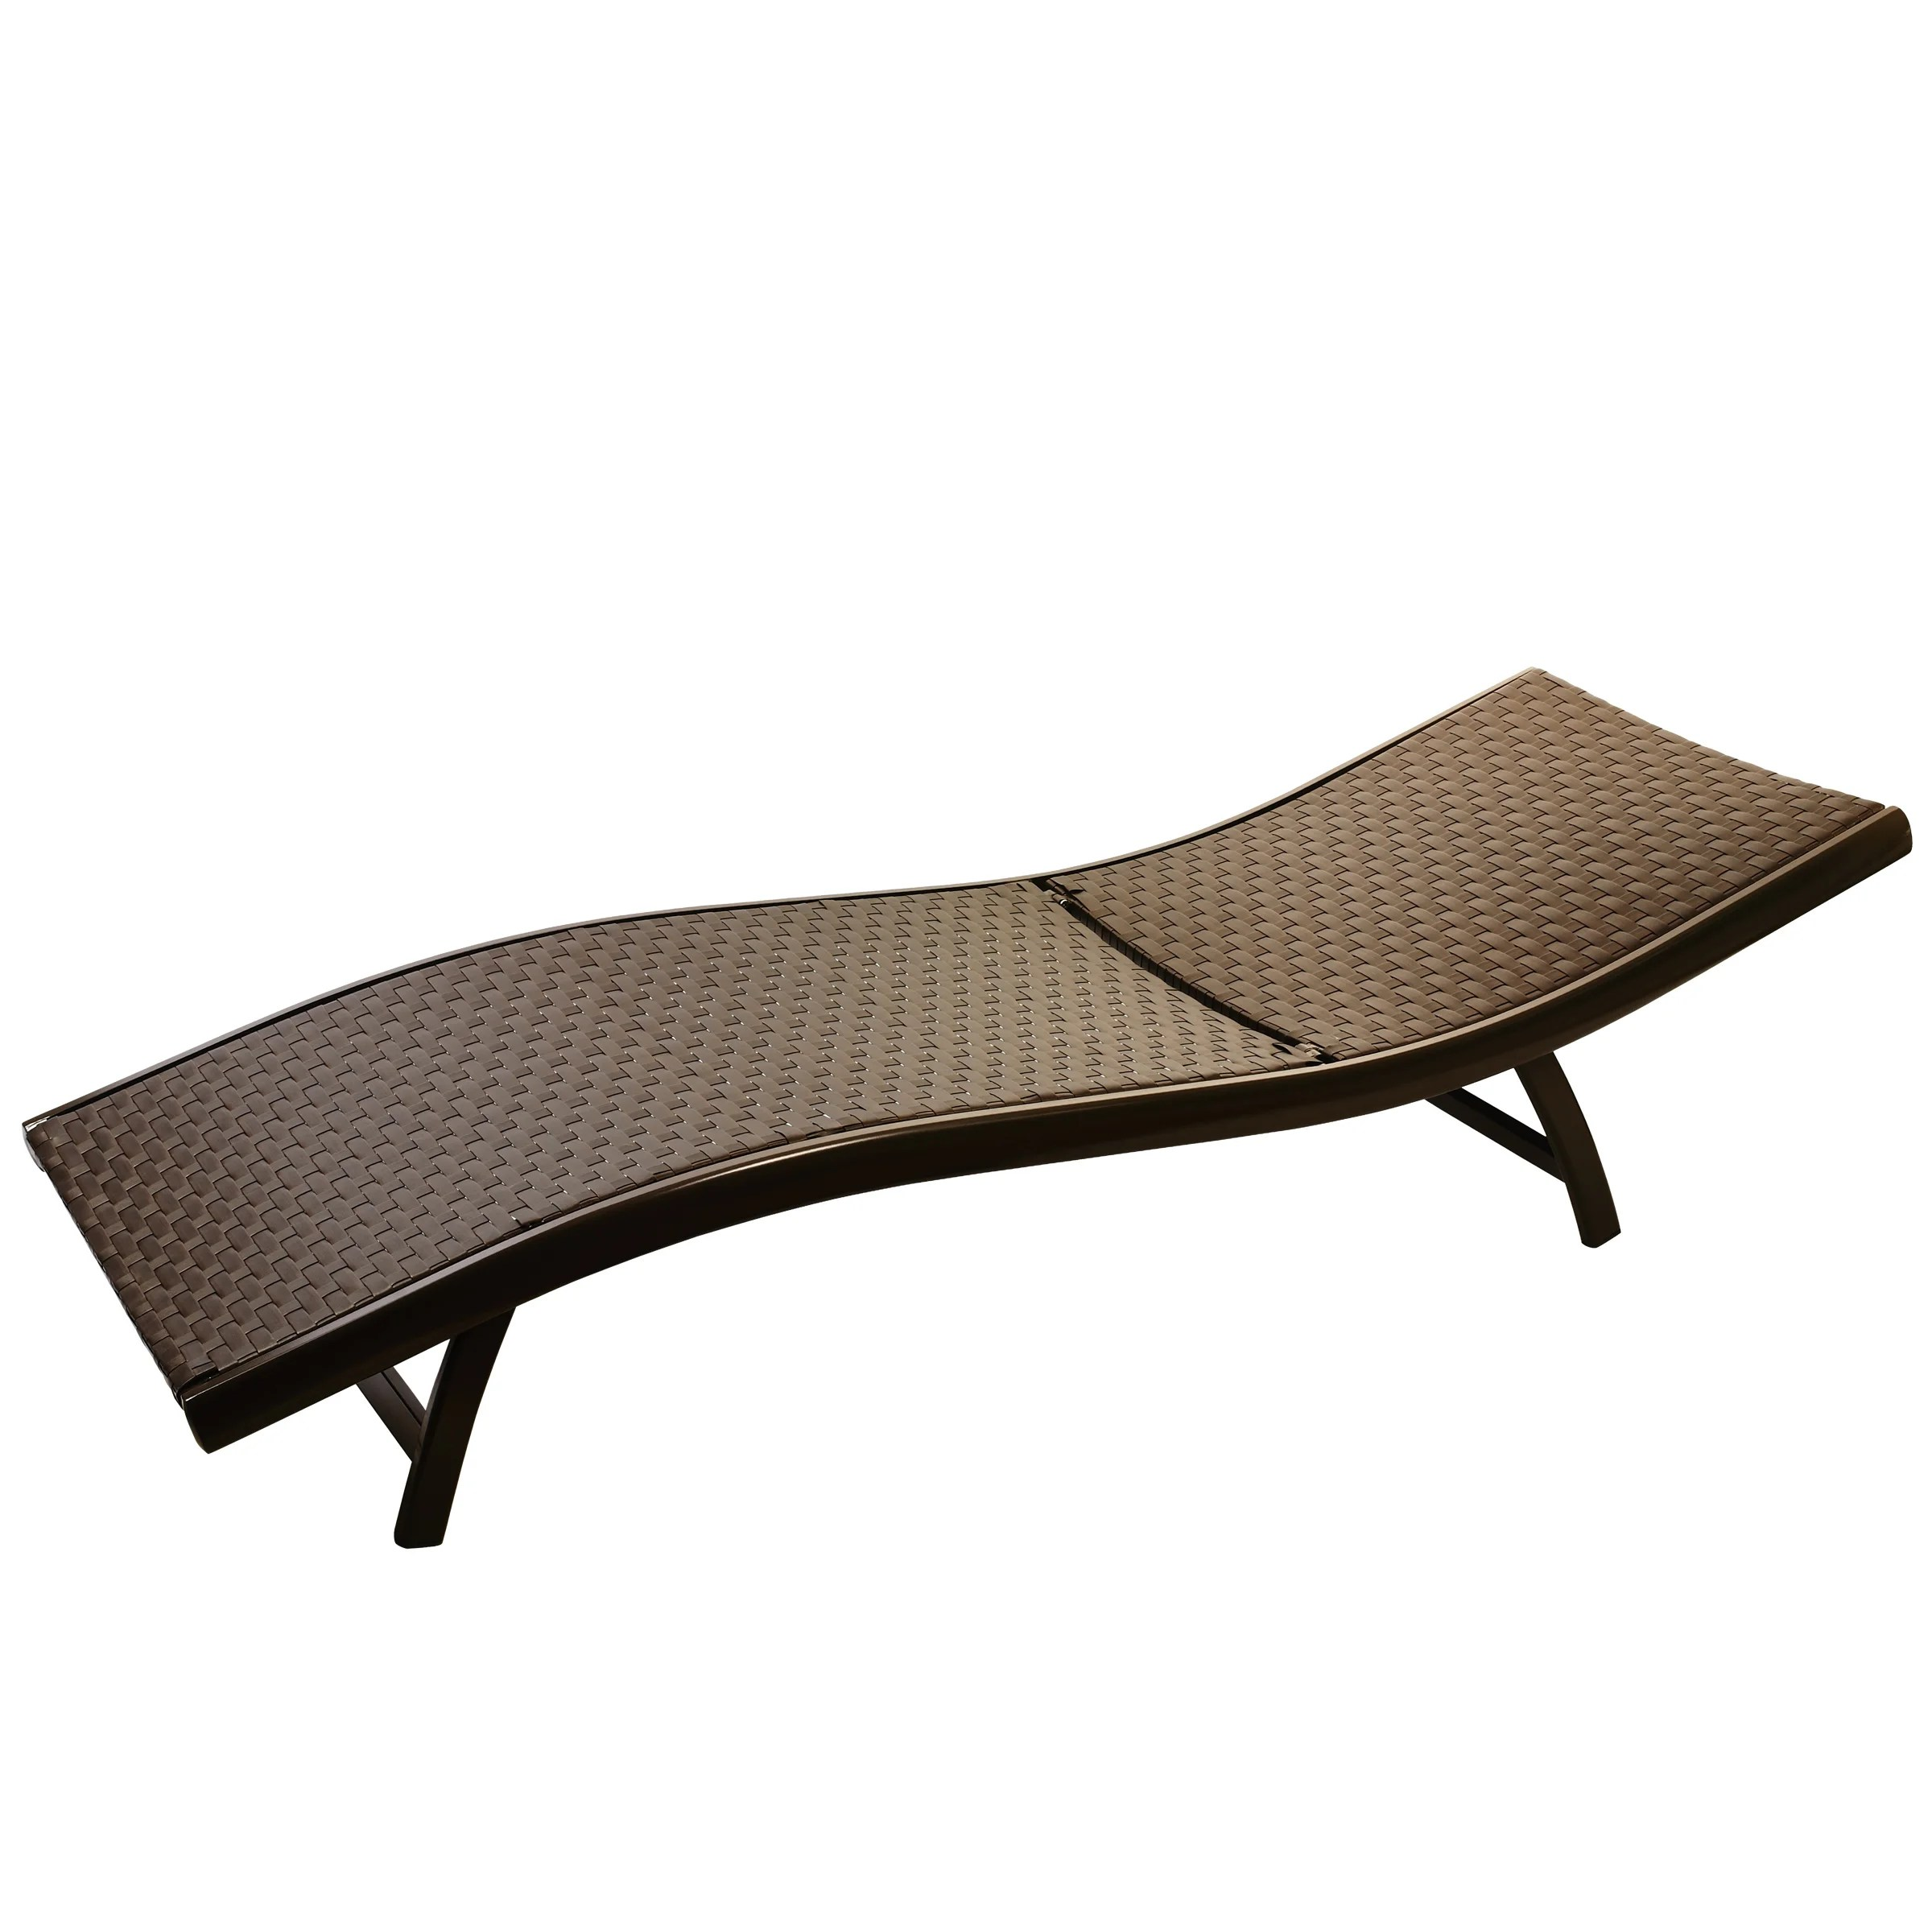 infinita all weather wide weave wicker sun chaise lounger set of 2